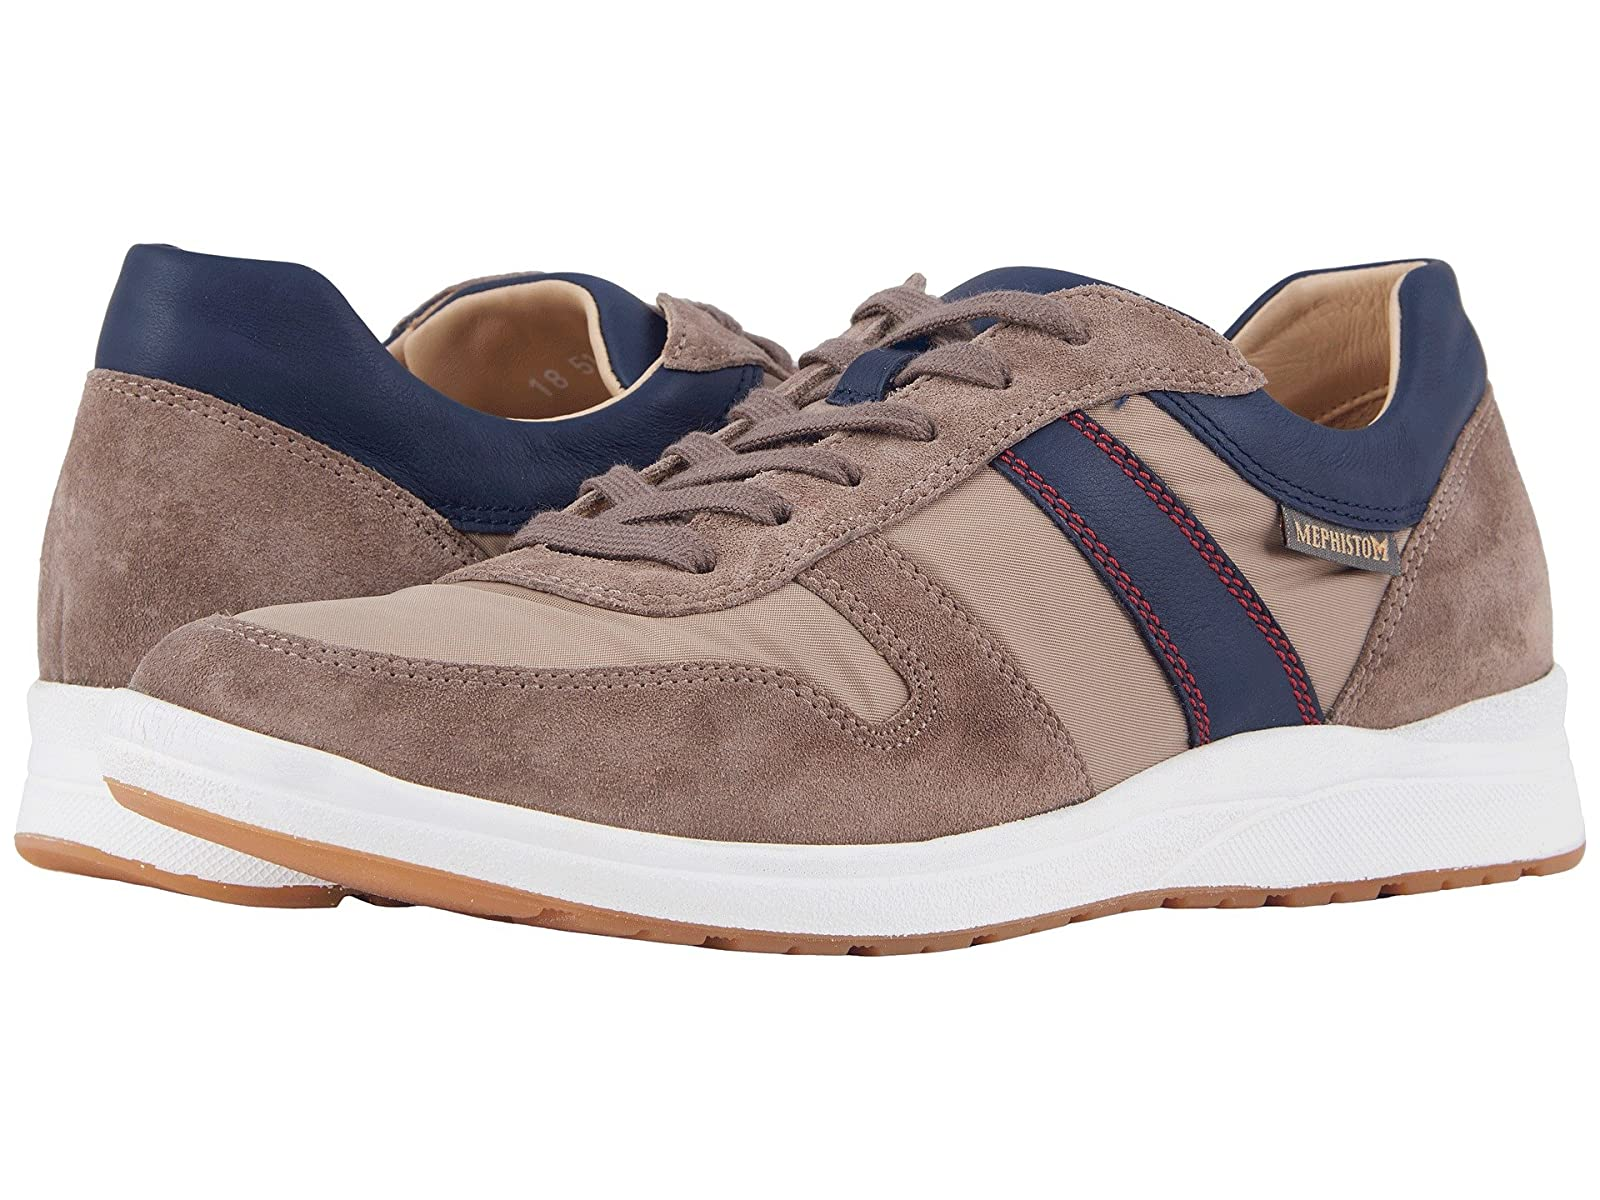 Mephisto Vito SportAtmospheric grades have affordable shoes